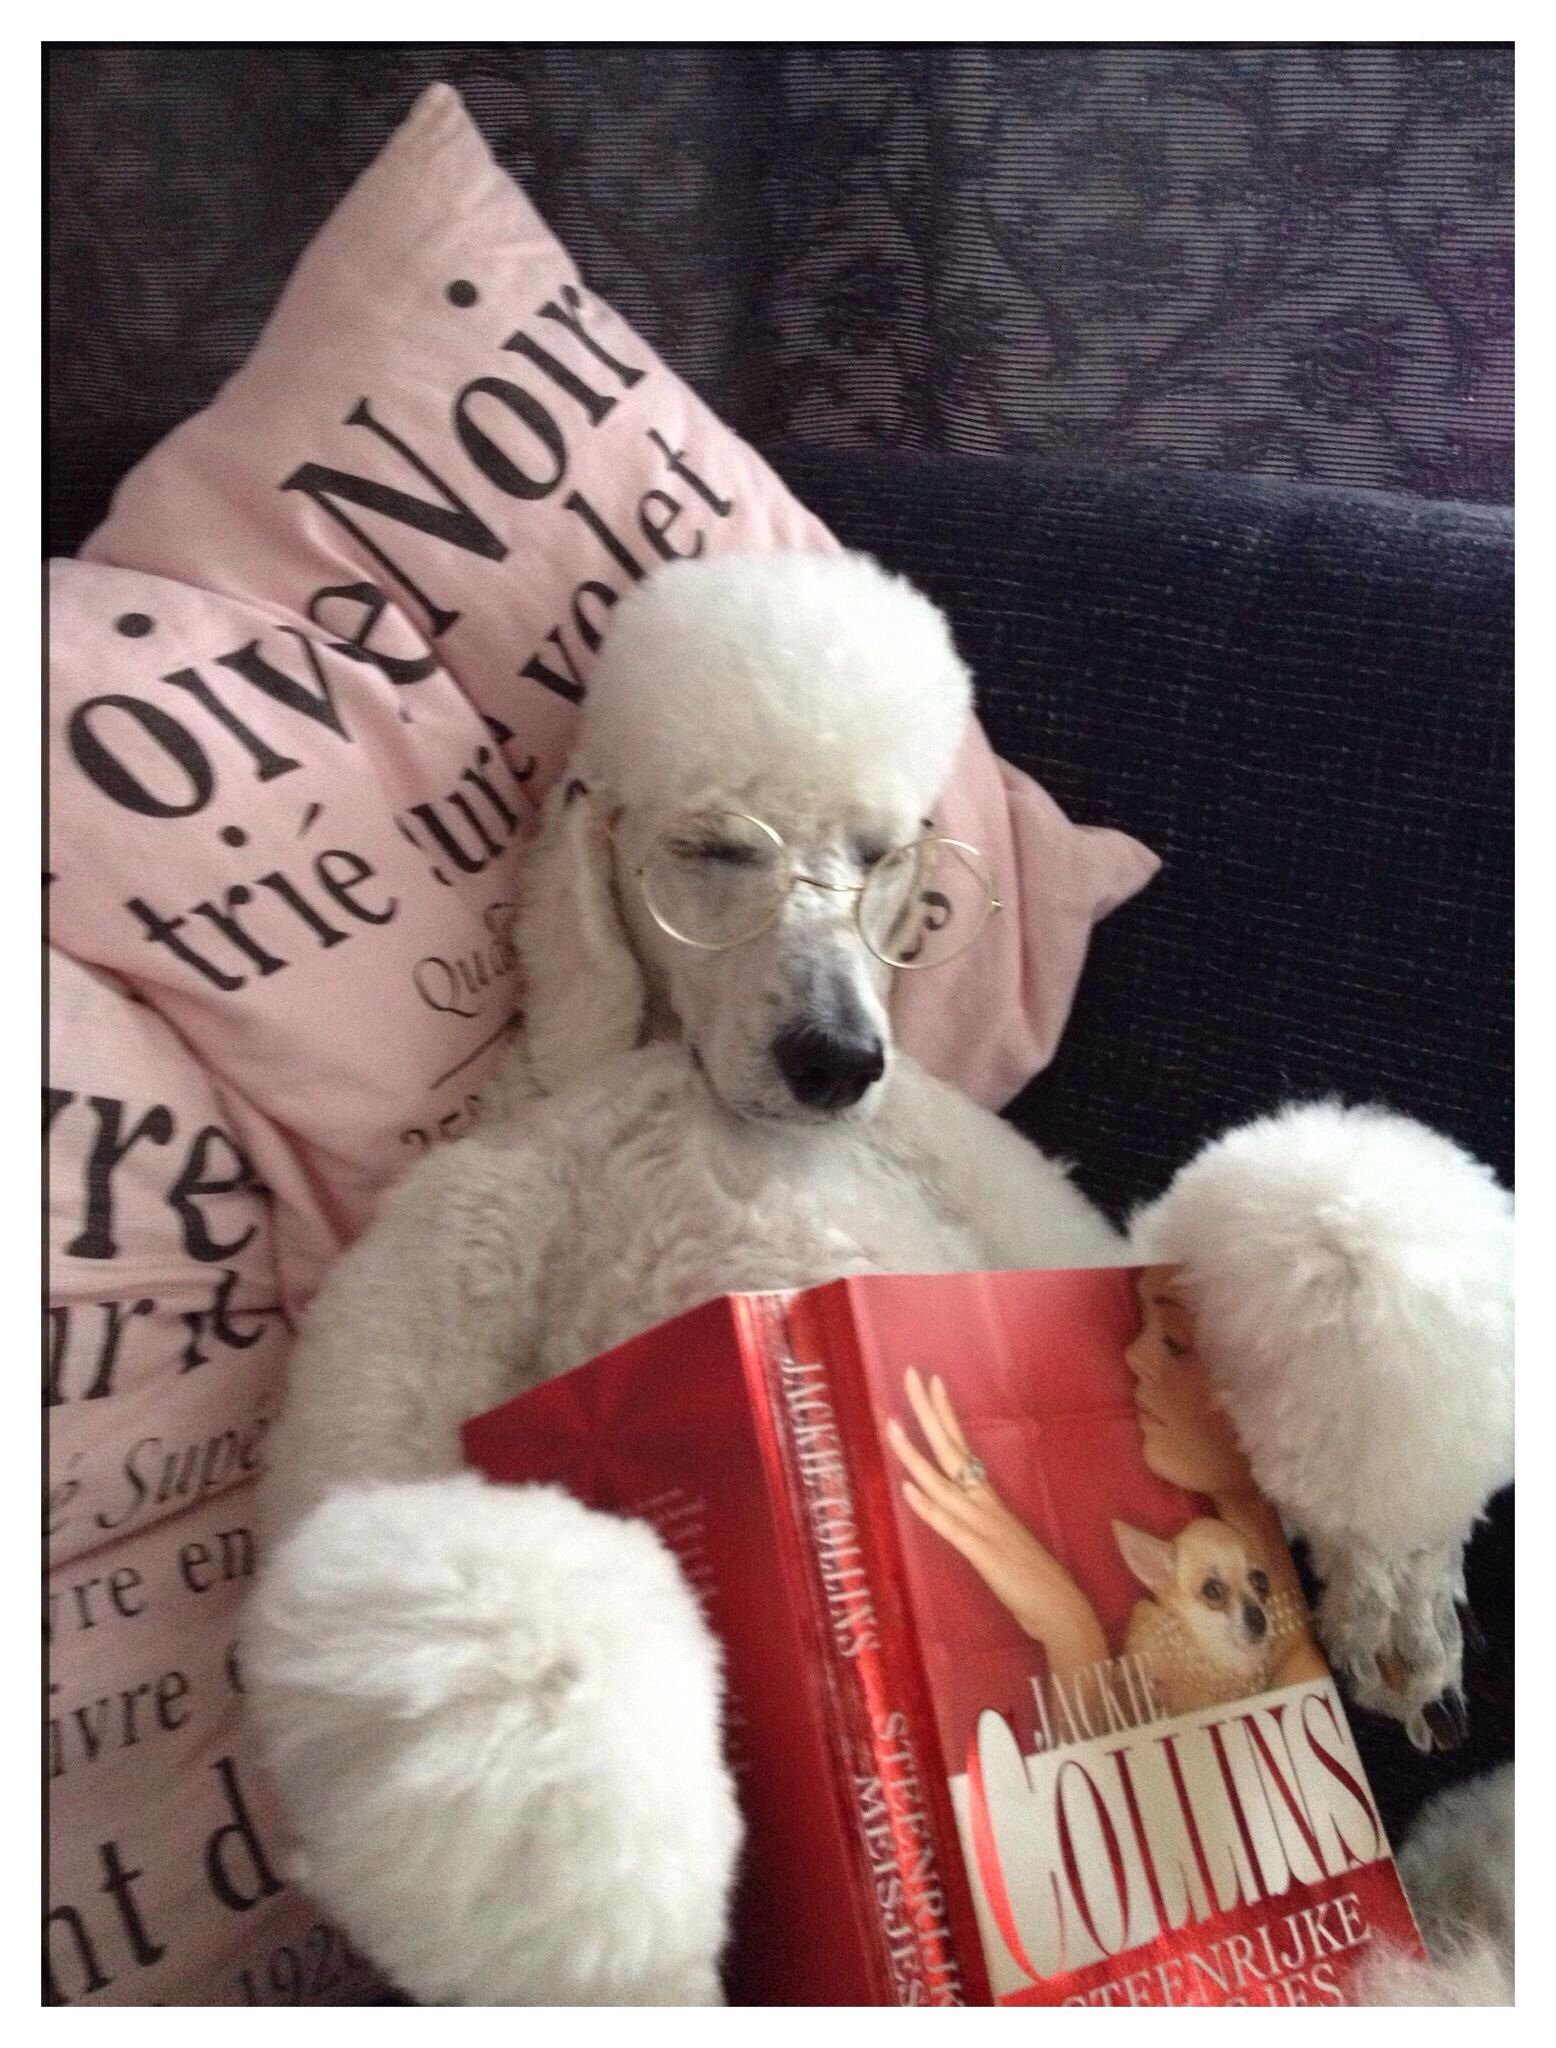 Lazy Poodle Reads Jackie Collins Caniche Perros Frases Perros Bonitos